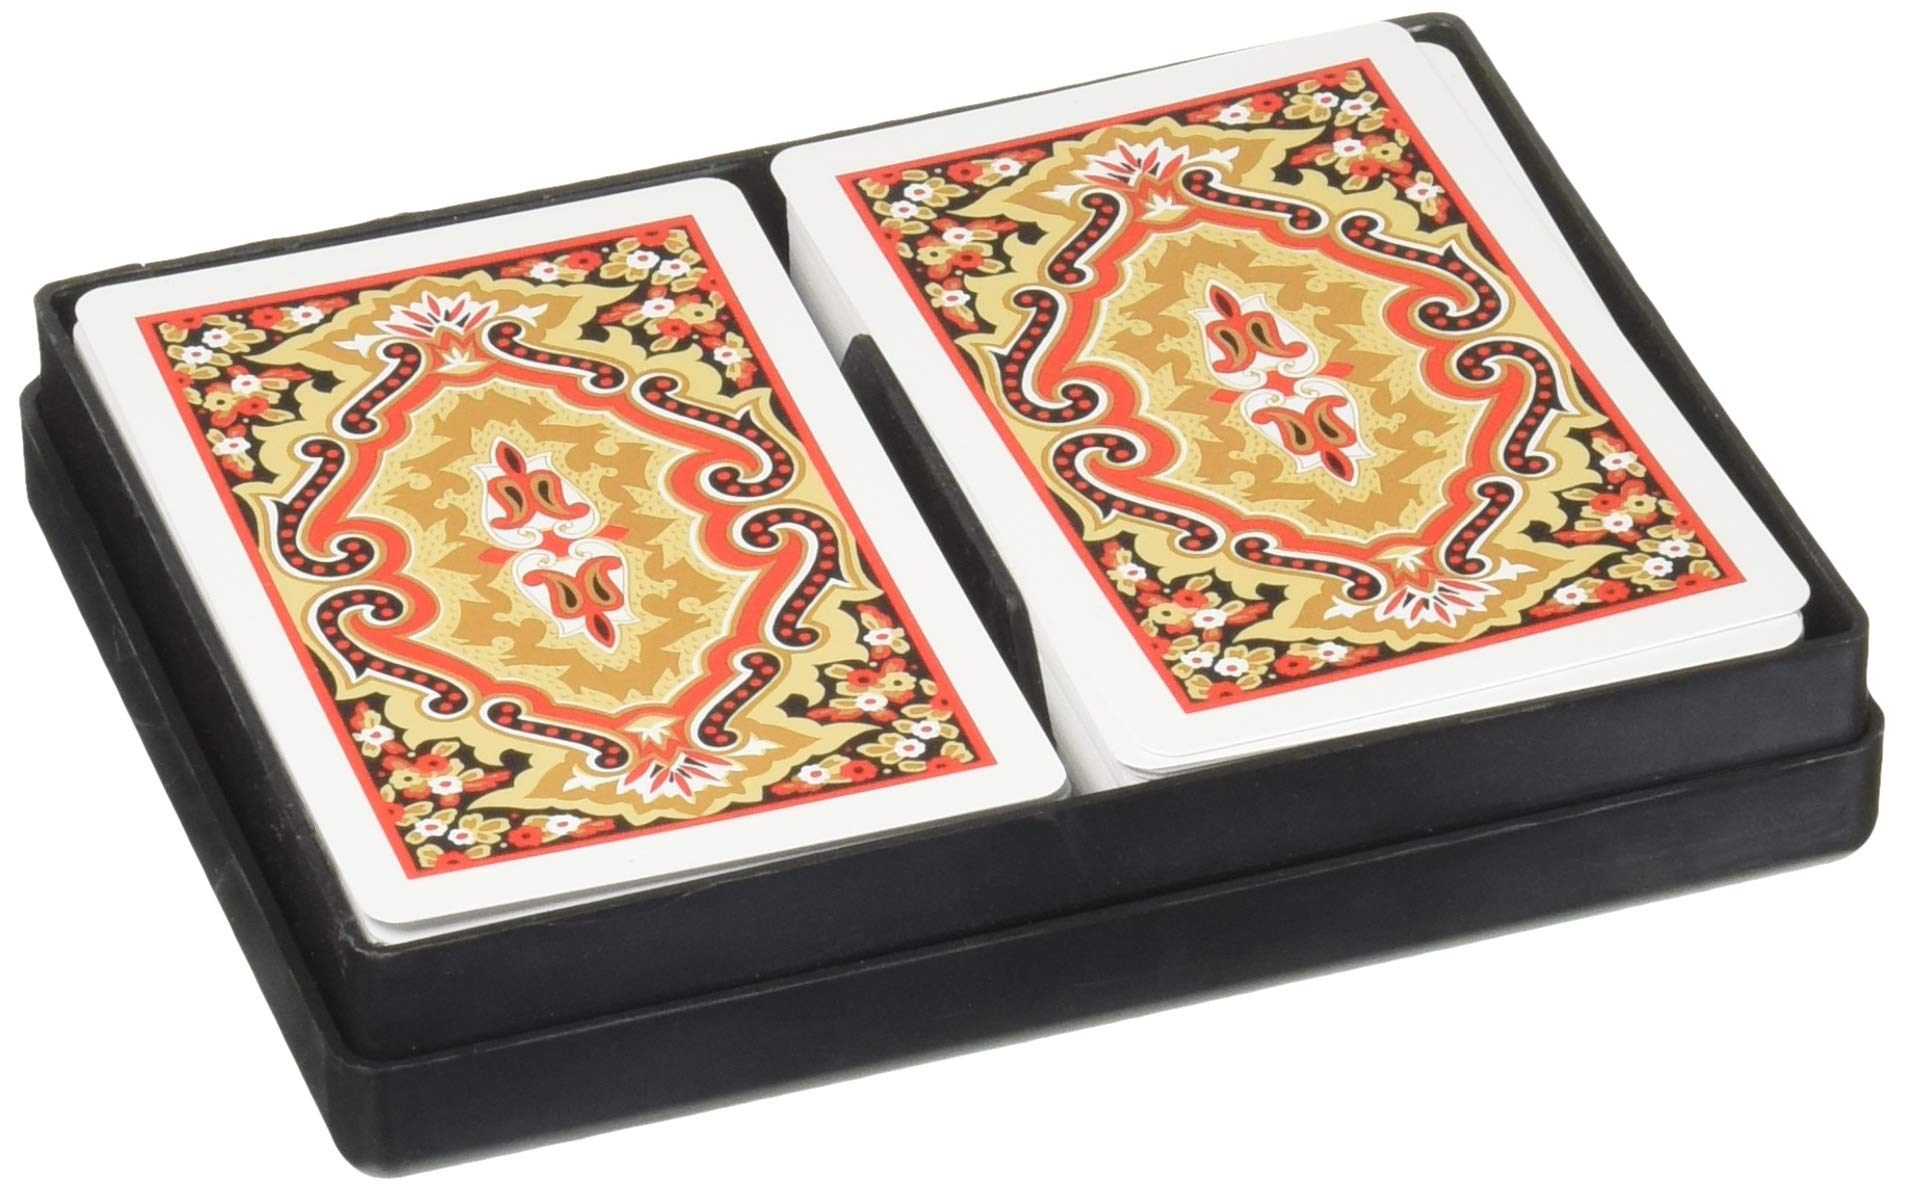 KEM Paisley Bridge Size Jumbo Index Playing Cards